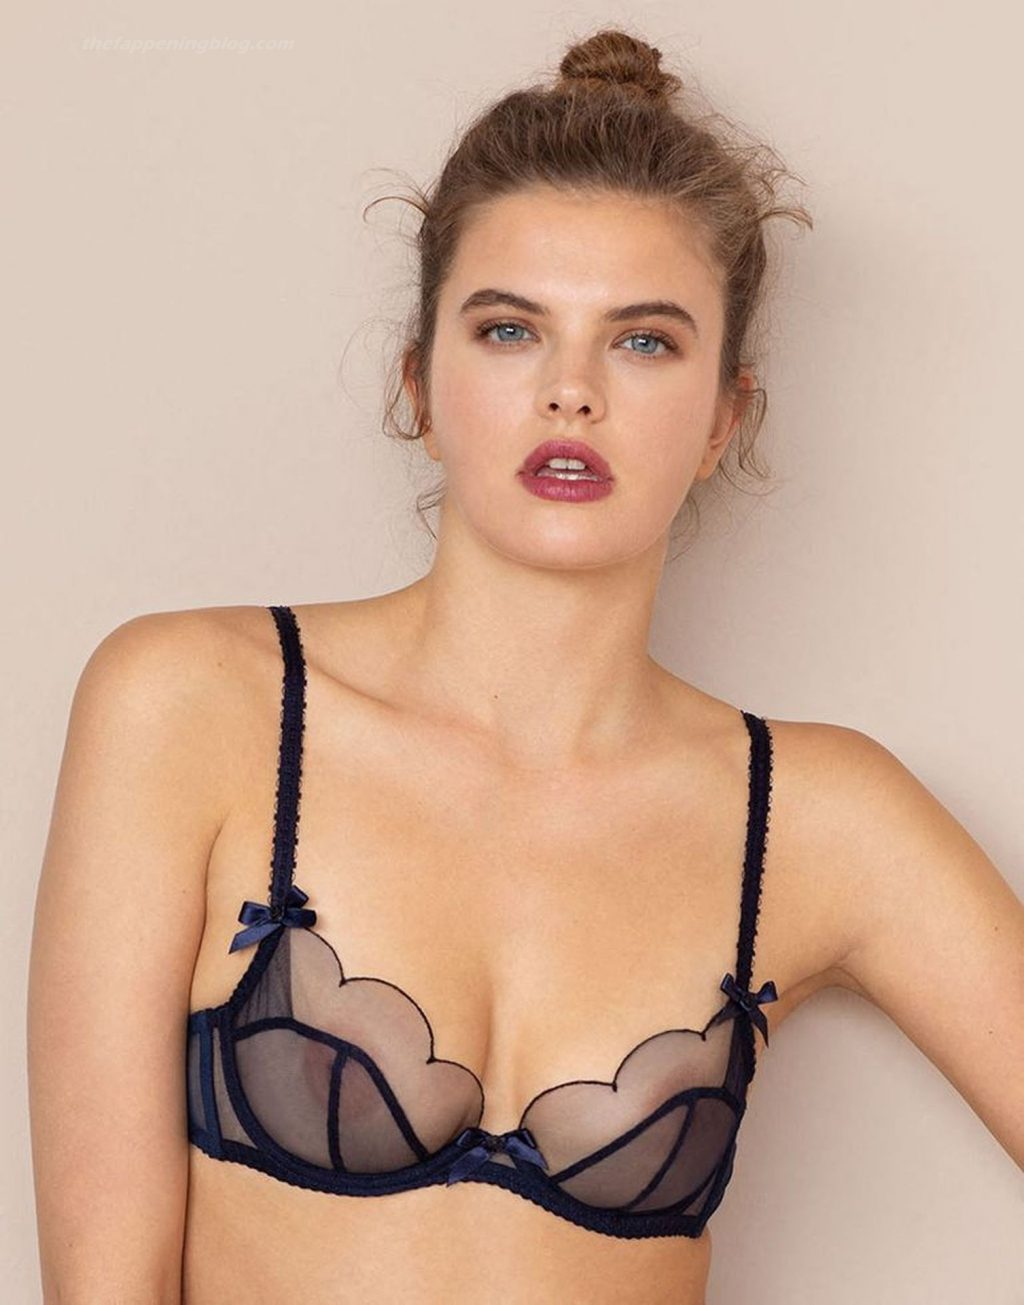 Agent Provocateur Launches Sales to End the Year (37 Photos)